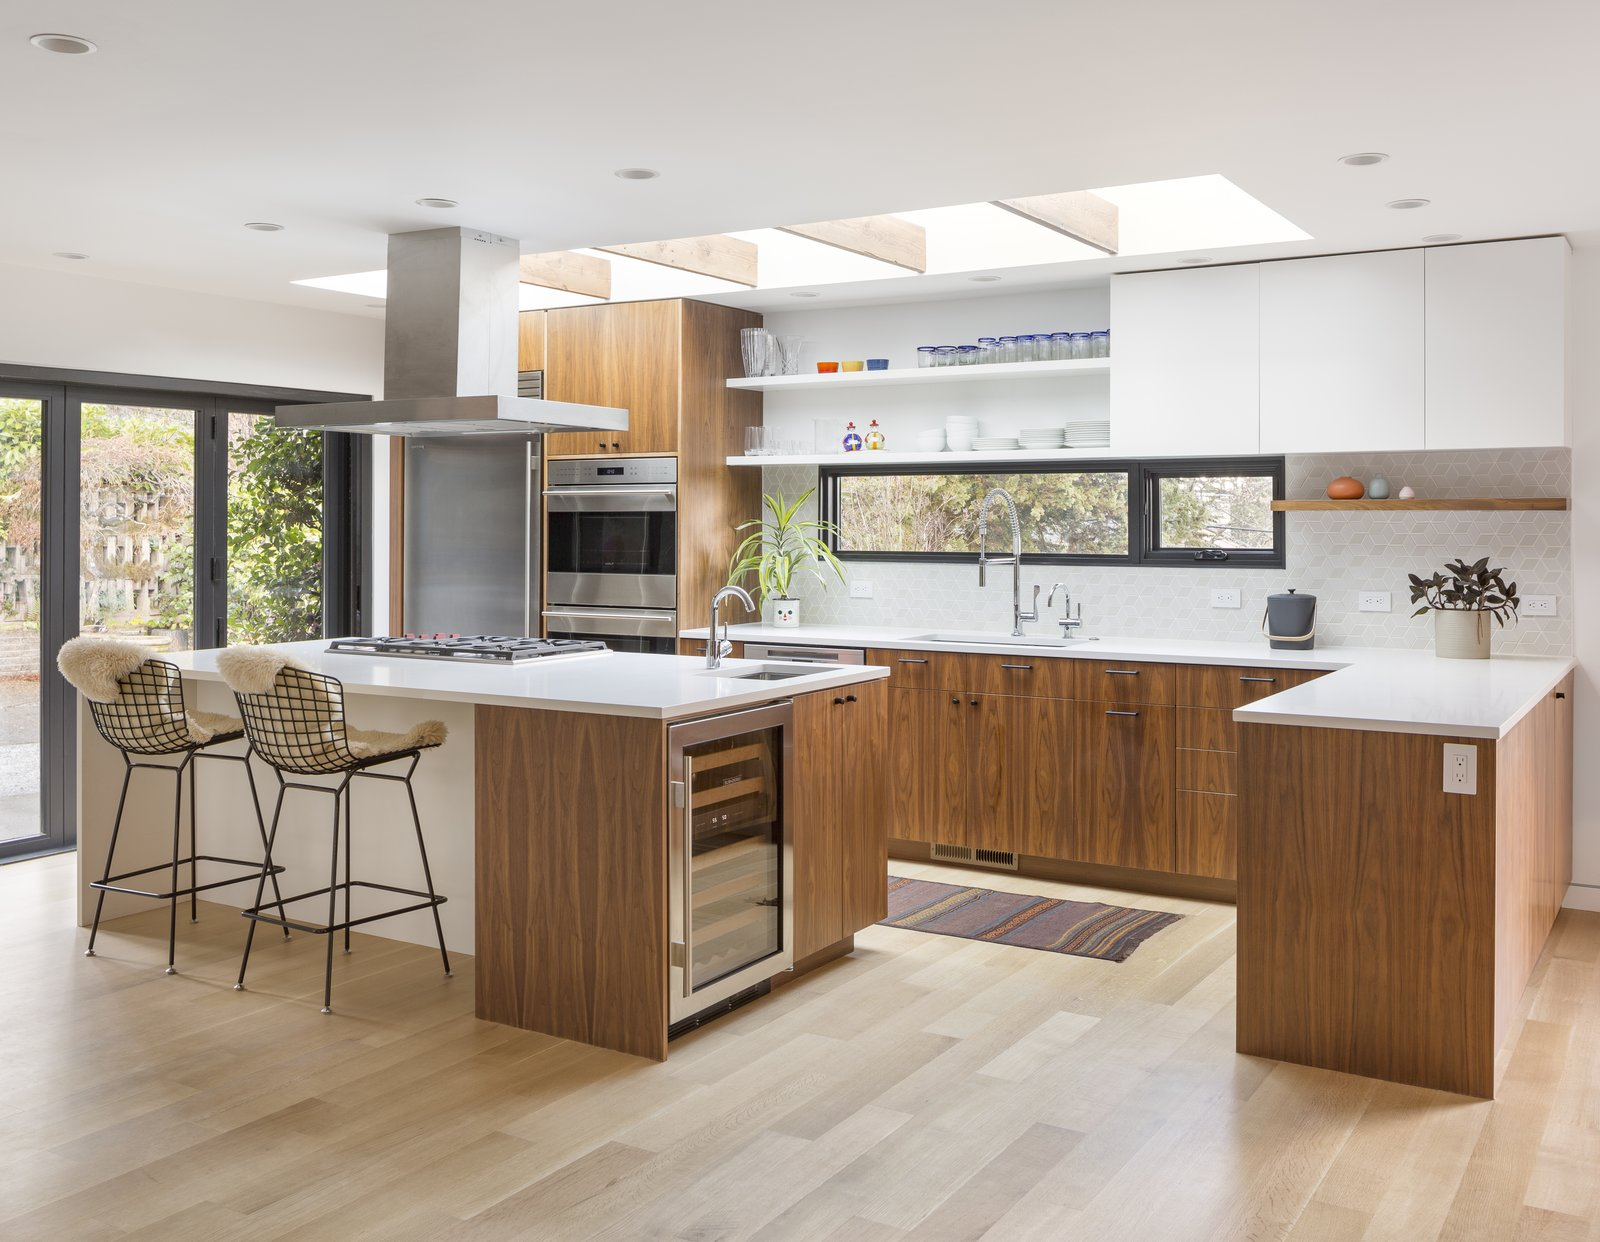 Portland-base pastry chef Andrea Nicholas purchased a 1953 midcentury ranch whose 2,500 square feet needed